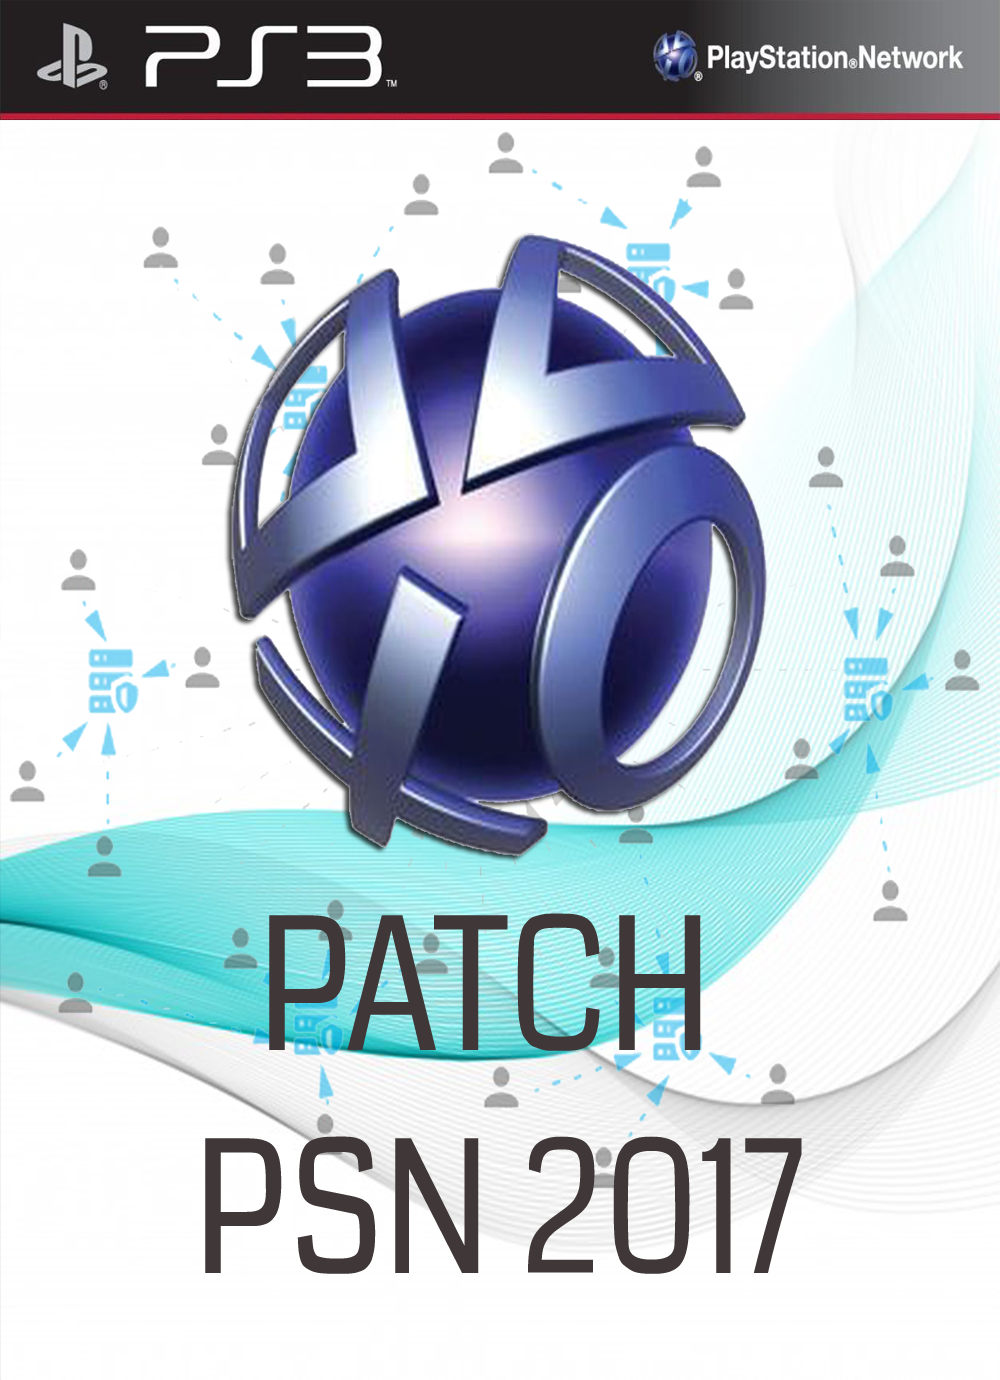 Download PSN Patch 2017 Ps4 Exploit Hack, Apps, PS3 CFW